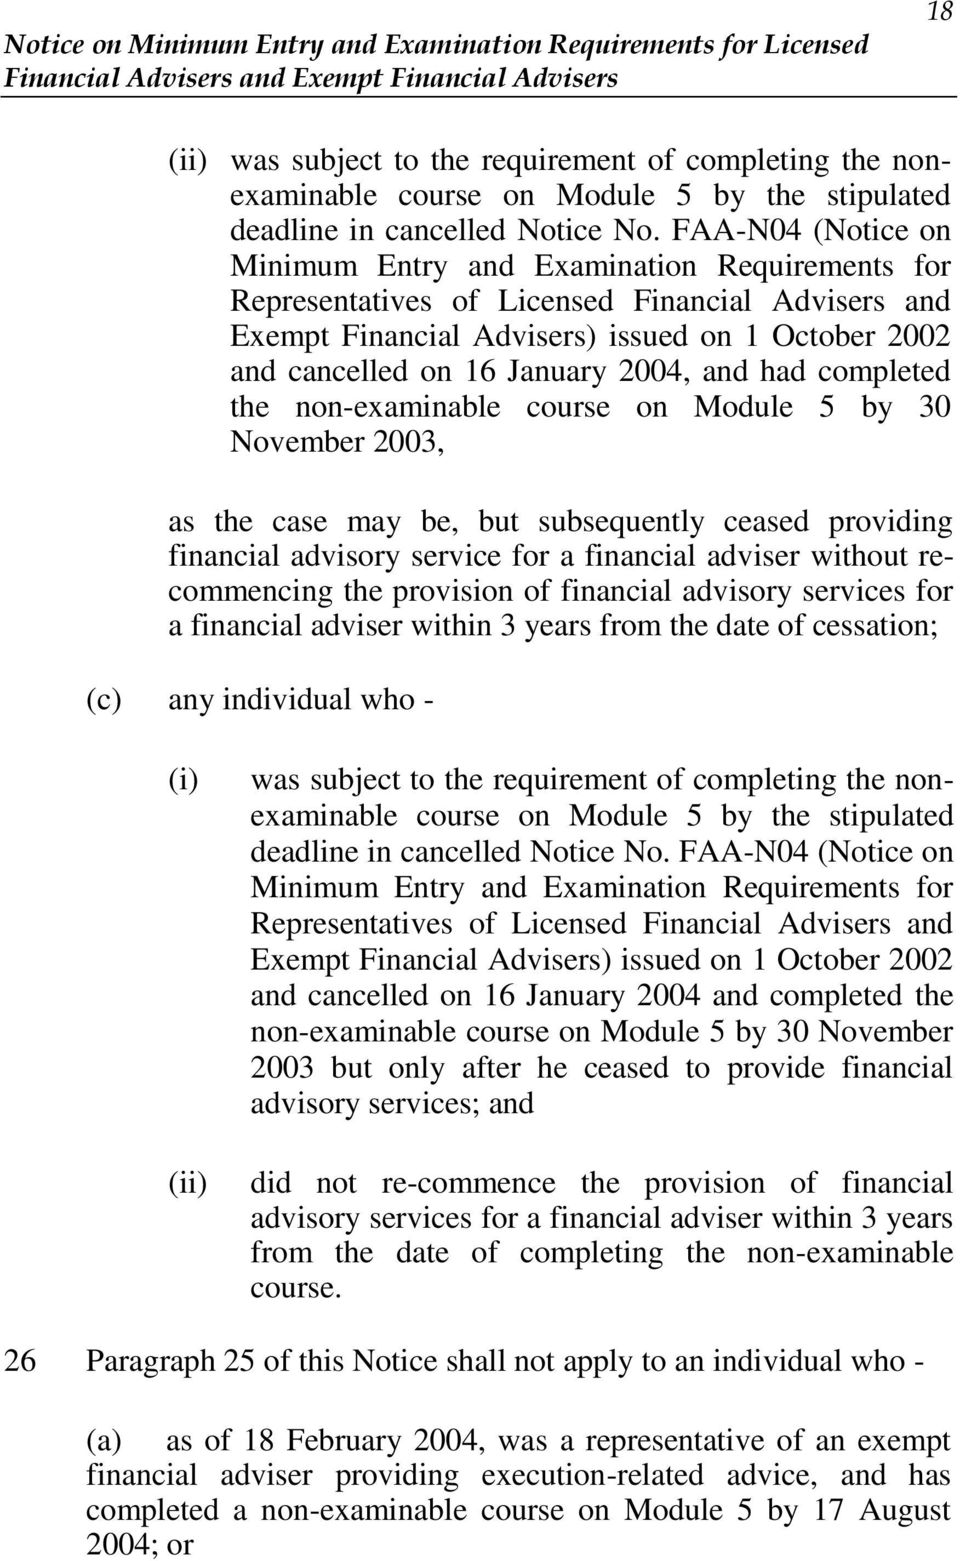 2004, and had completed the non-examinable course on Module 5 by 30 November 2003, as the case may be, but subsequently ceased providing financial advisory service for a financial adviser without